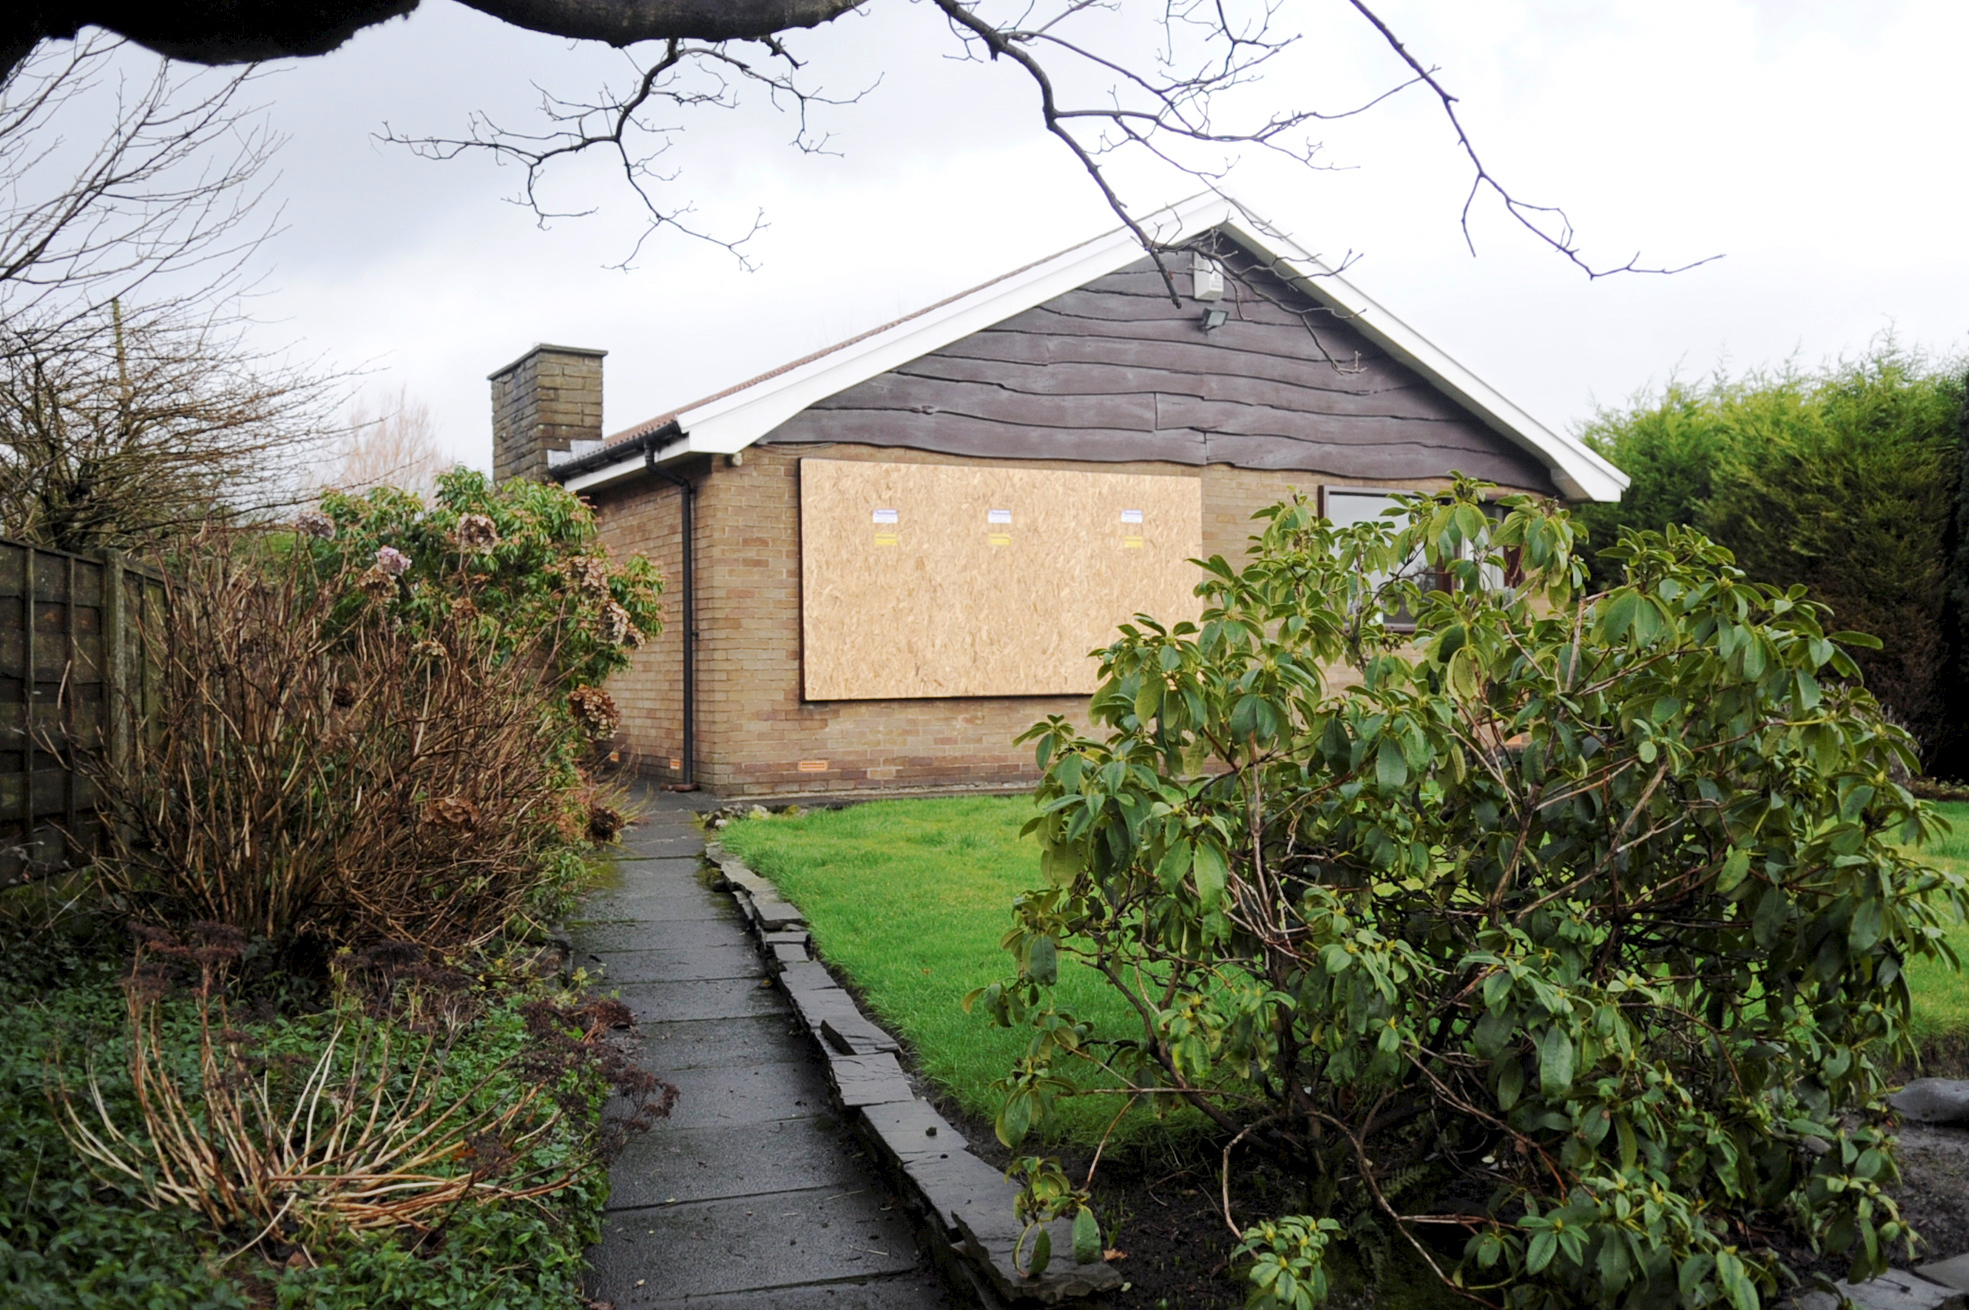 The burgled bungalow in Foster Lane, Breightmet